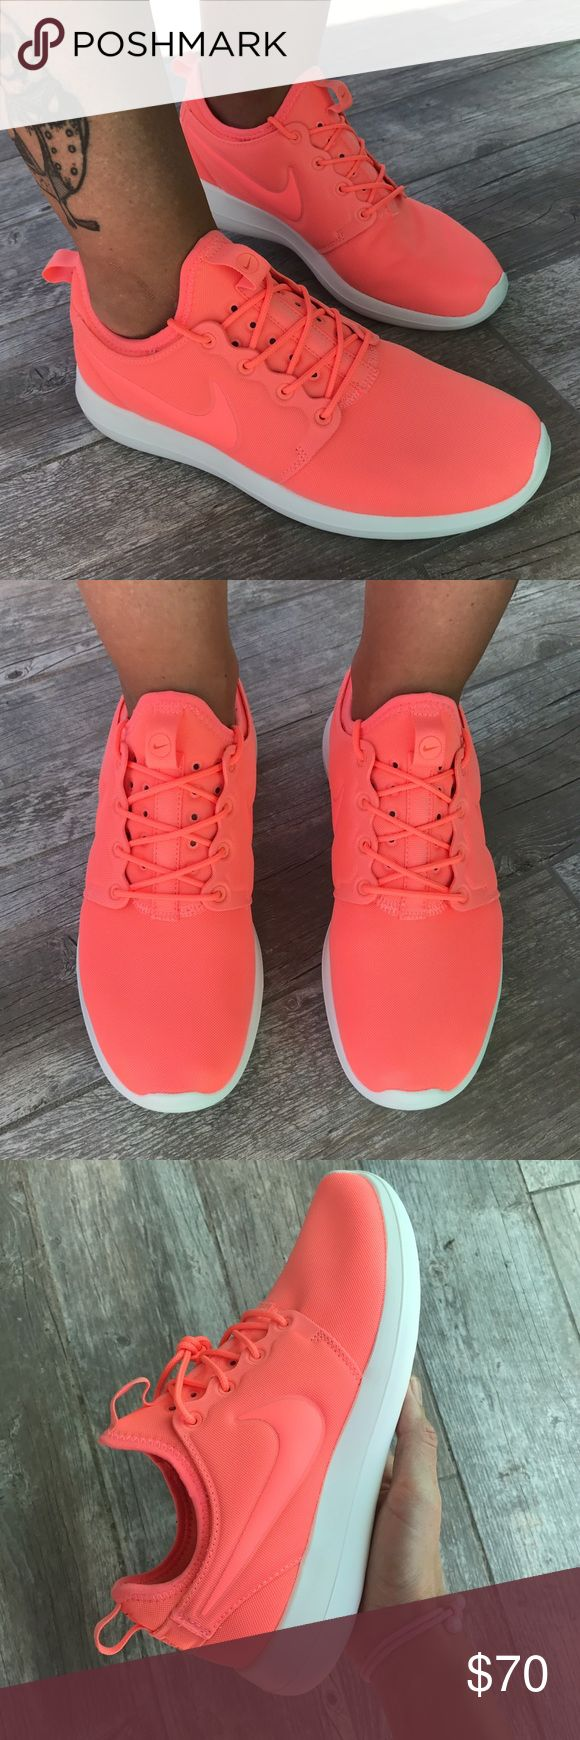 Coral Love ❤️ Nike sneakers new Coral Love ❤️ Nike sneakers New Nike Shoes Sneakers